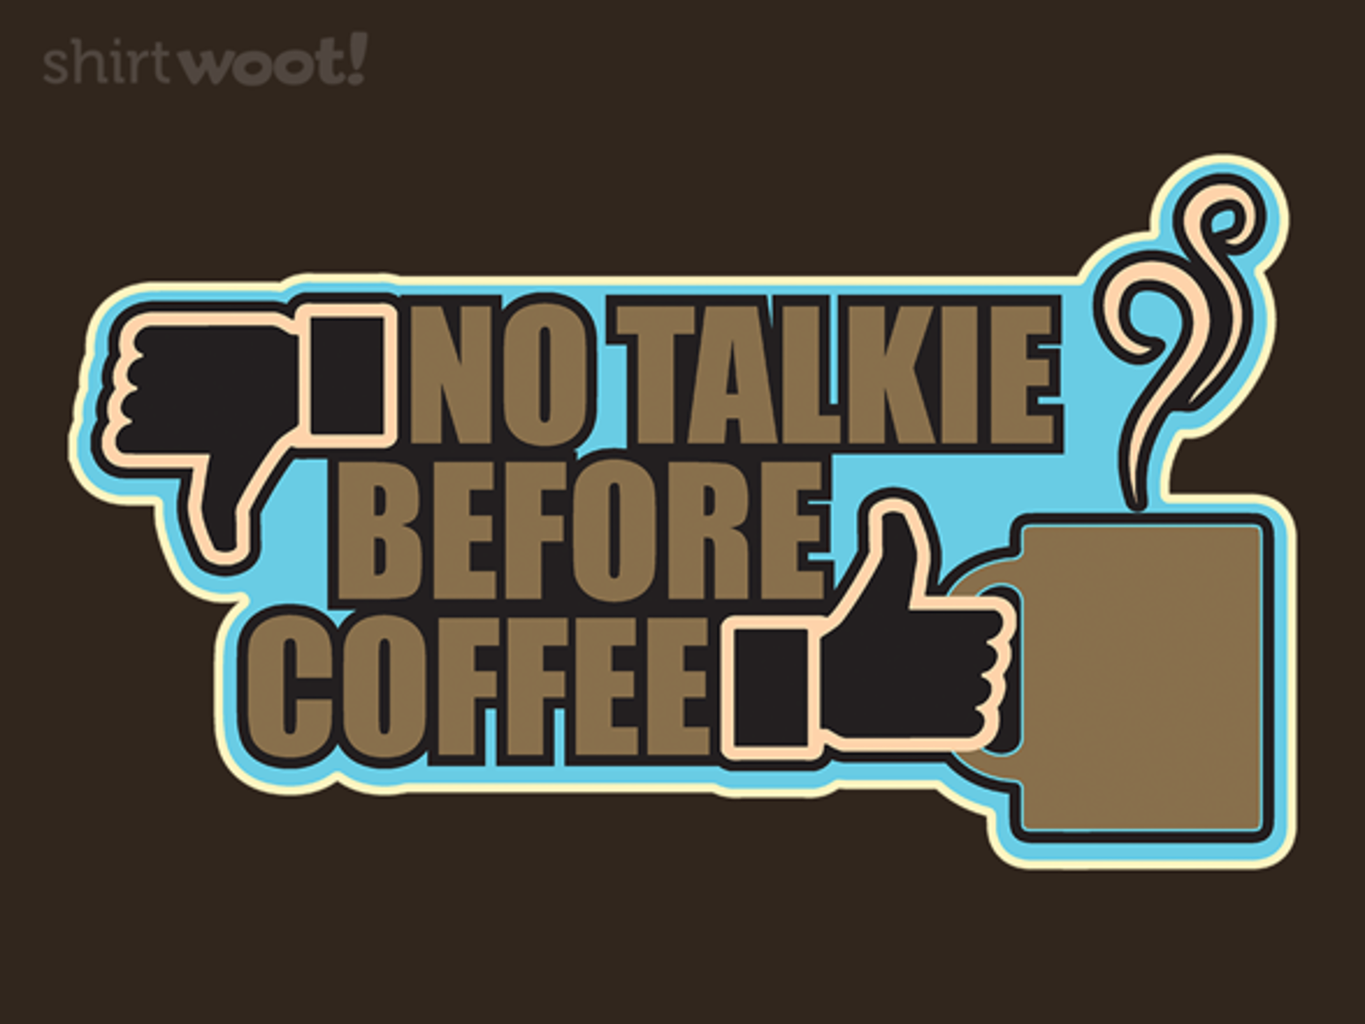 Woot!: Morning Rule